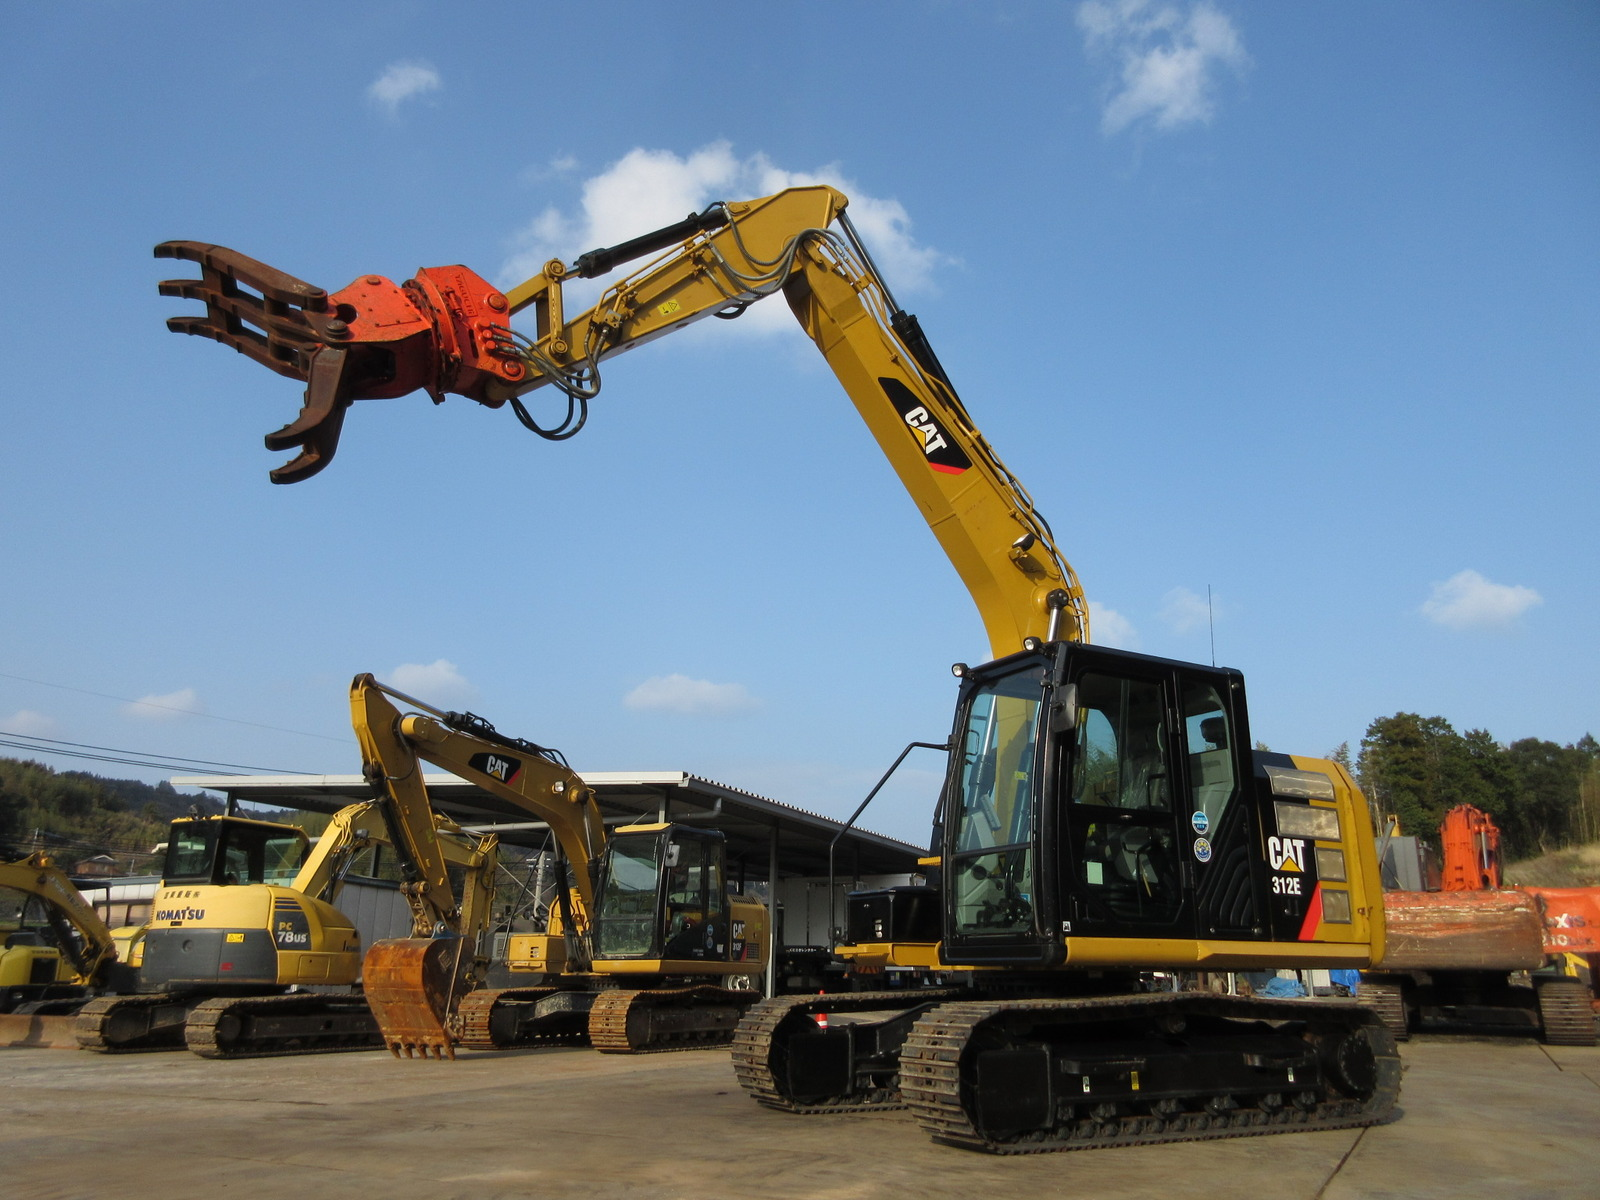 Used Construction Machine used  Material Handling / Recycling excavators Grapple 312E-2 Photos